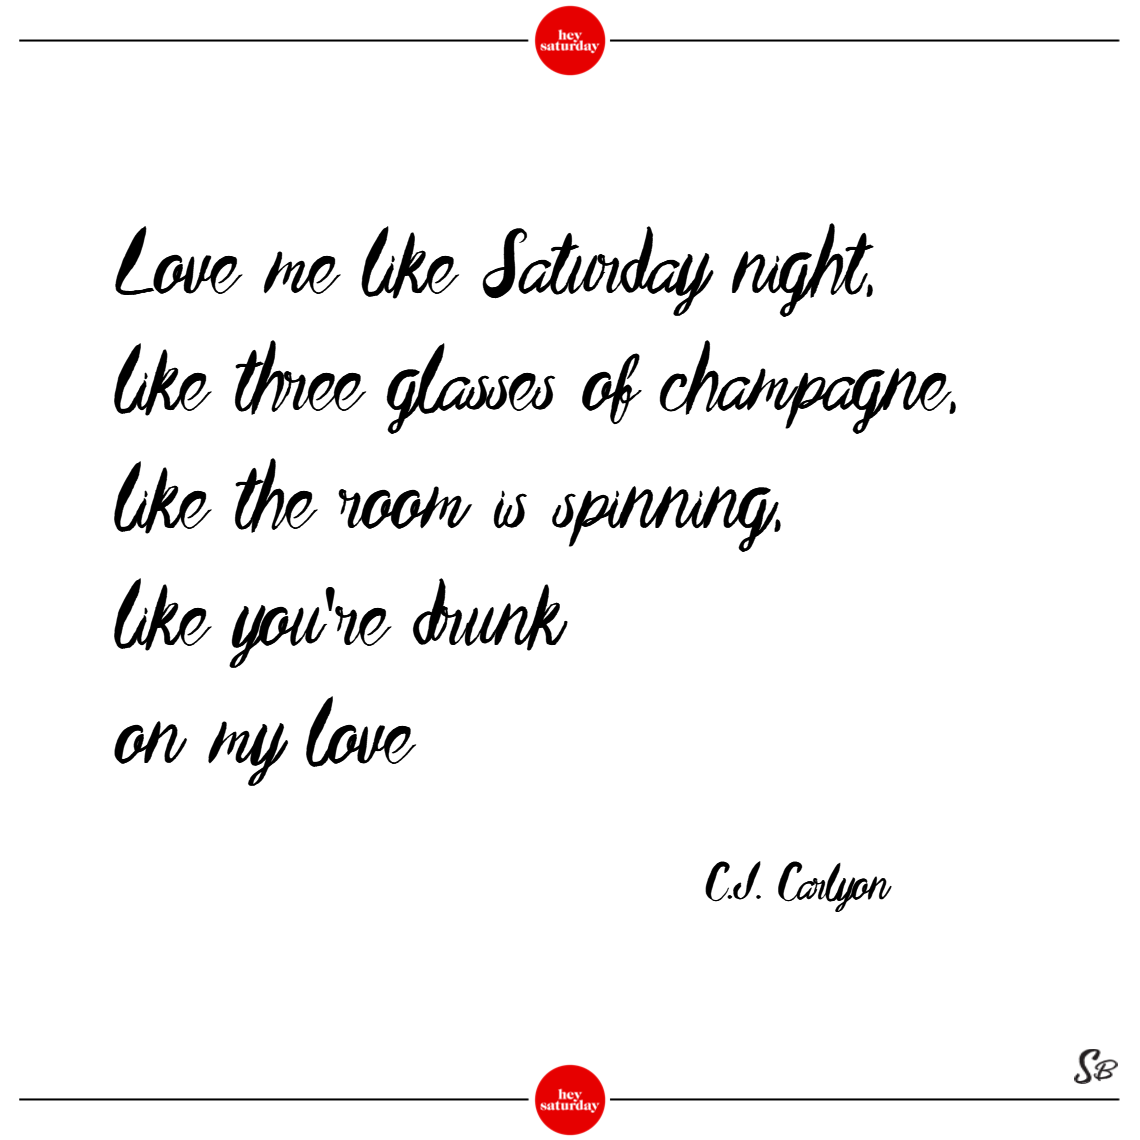 Love me like saturday night, like three glasses of champagne, like the room is spinning, like you're drunk on my love. – c.j. carlyon saturday quotes